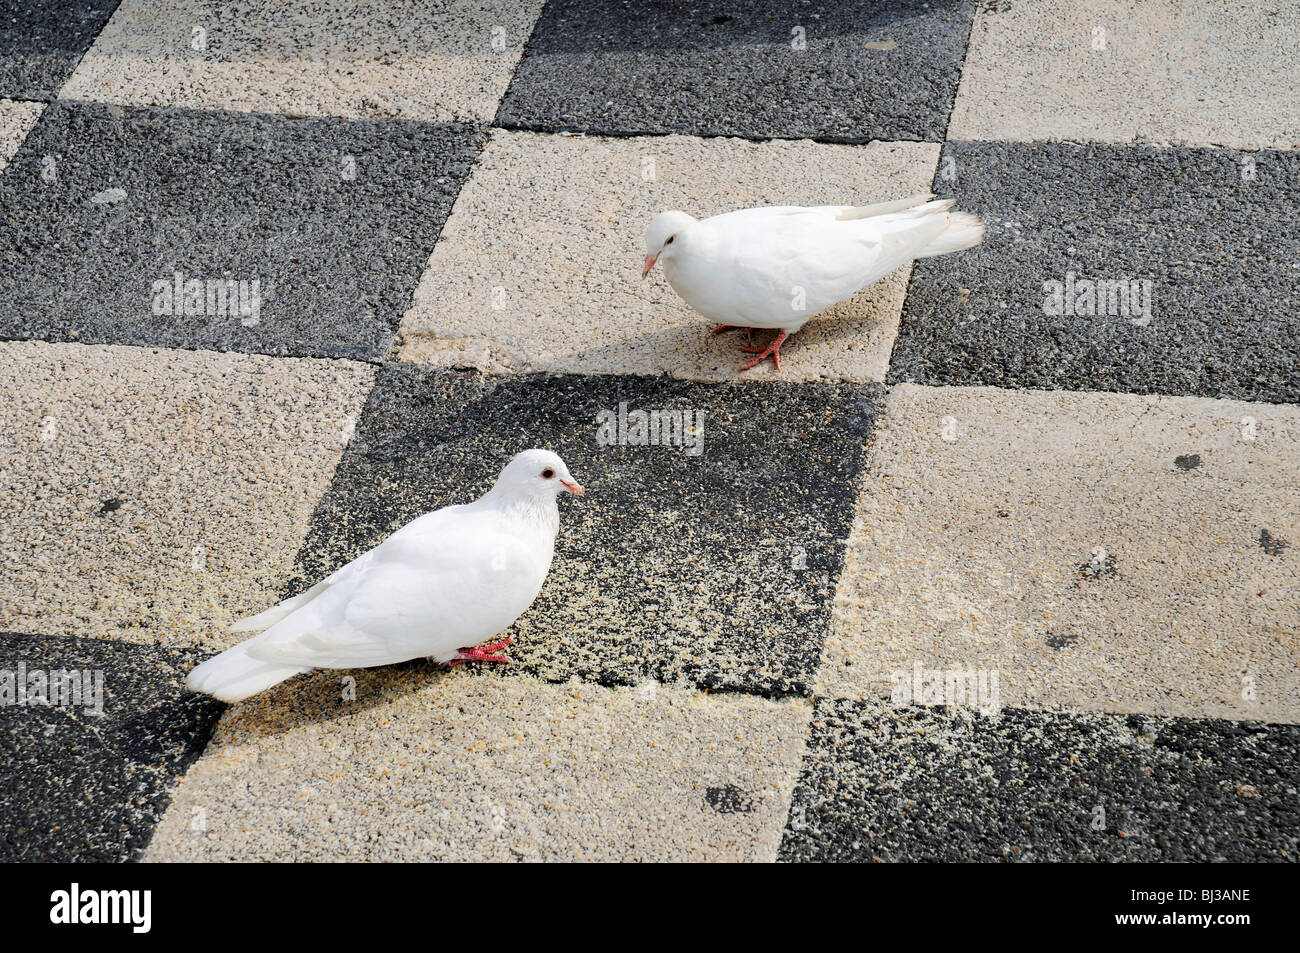 Doves, pavement, checkerboard pattern, Benidorm, Costa Blanca, Provinz Alicante, Spanien, Europa - Stock Image